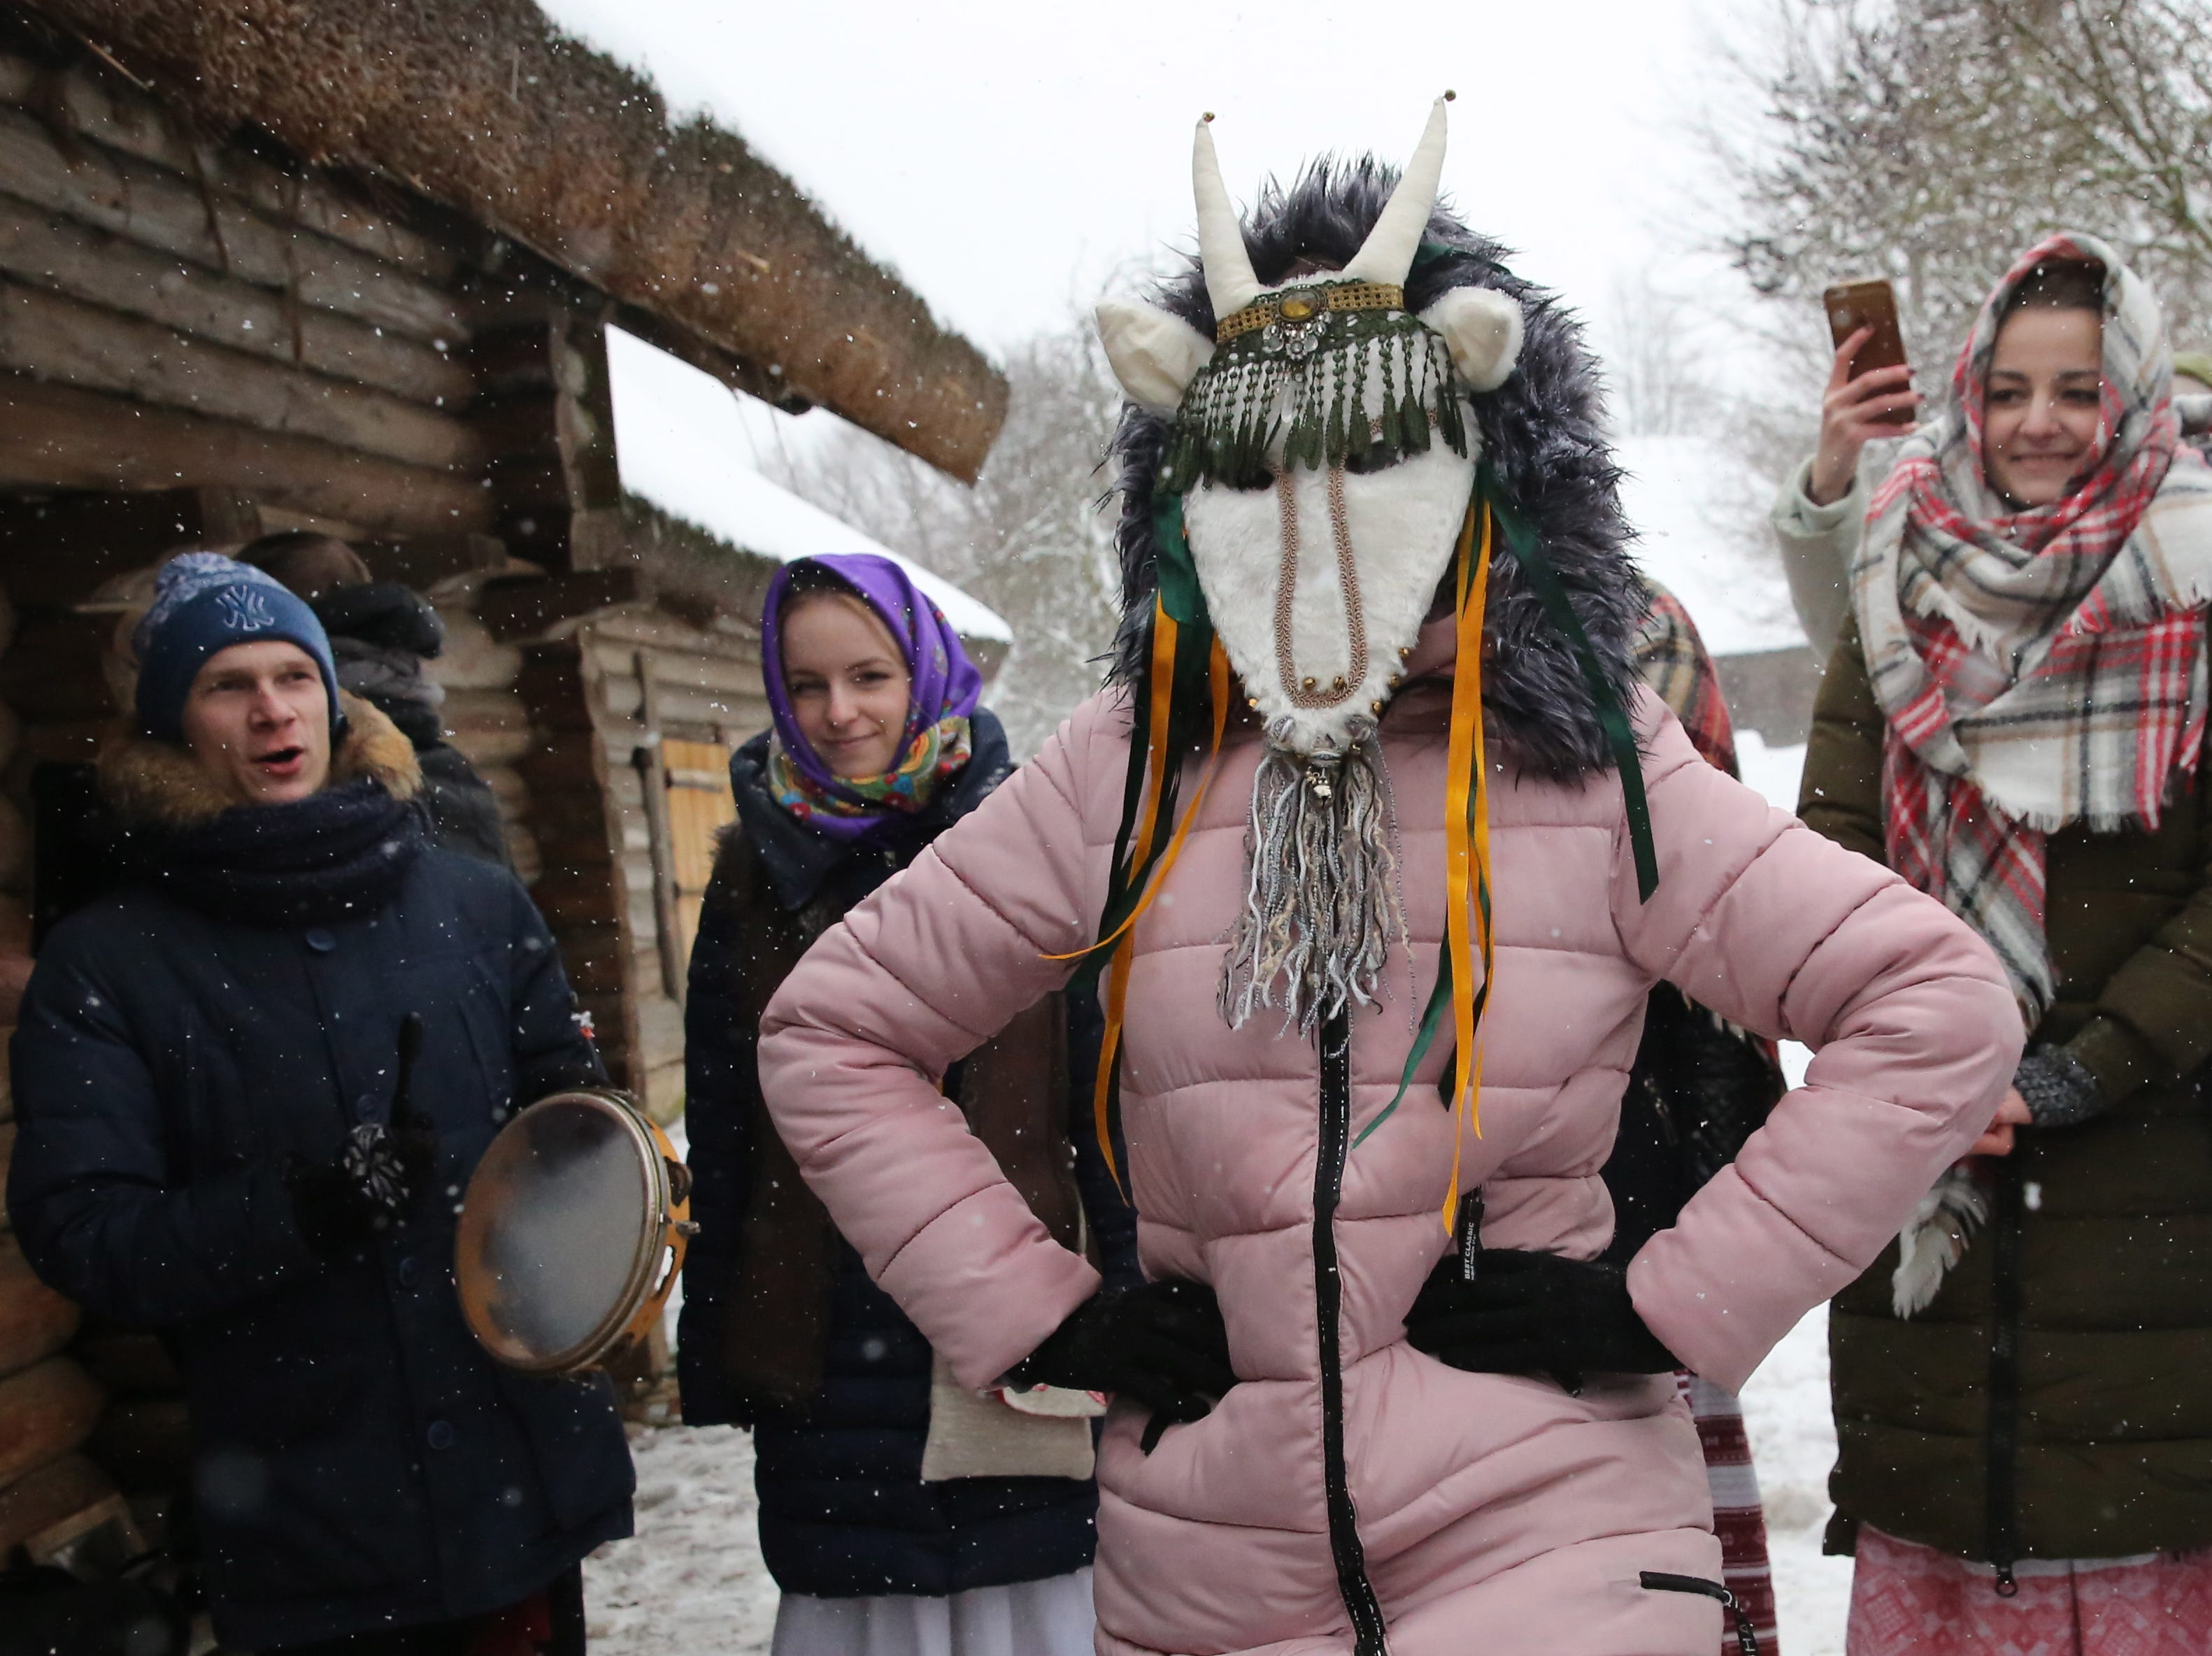 Belarussian artists wearing traditional costumes sing carol songs during Koliady celebrations in the village of Ozertso, some 5 km from Minsk, Belarus on Dec. 22, 2018. Koliady is an ancient pagan holiday initially celebrated on winter solstice.